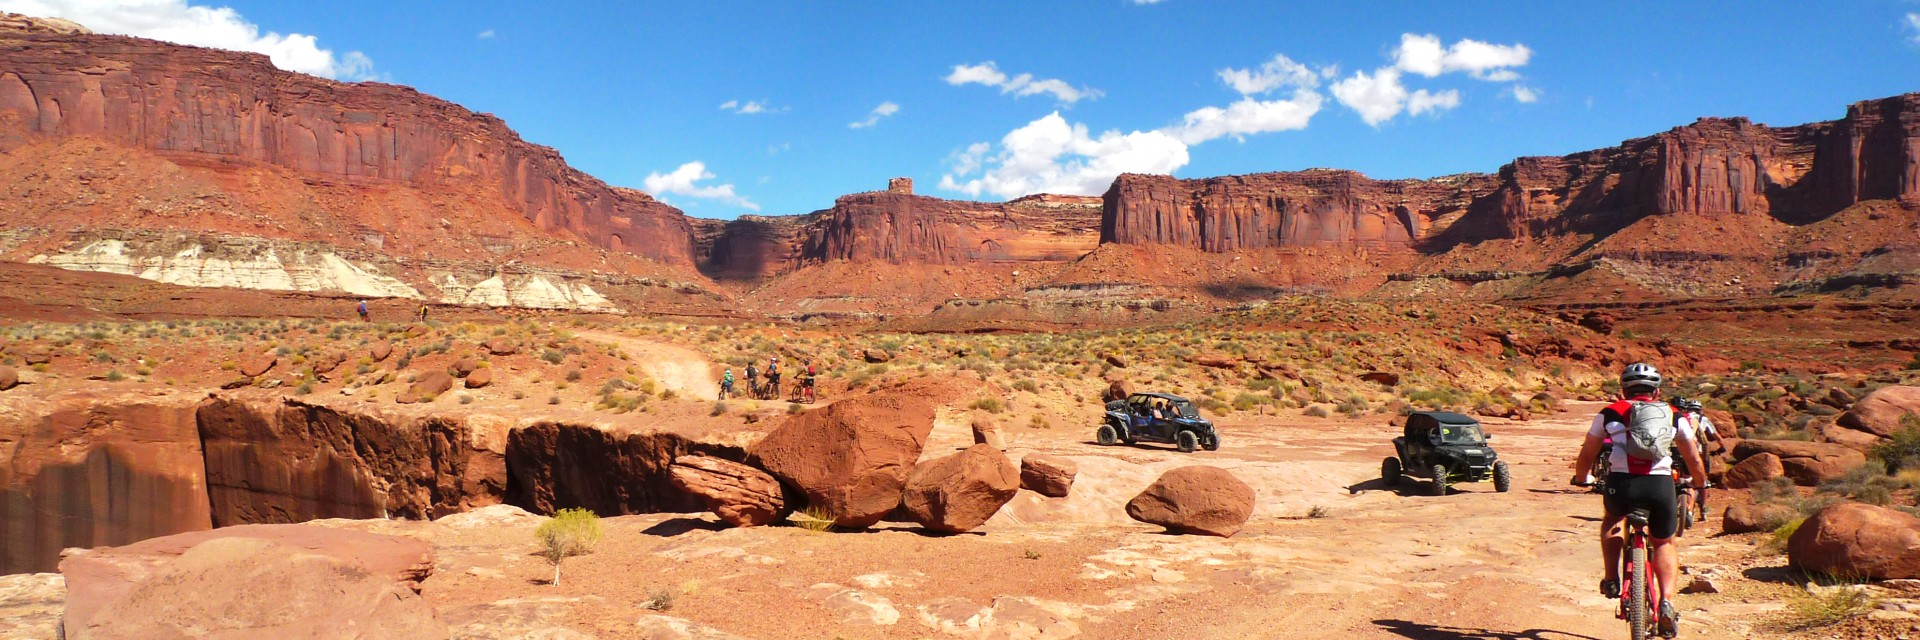 The White Rim Trail is popular with mountain bikers and and jeepers alike.